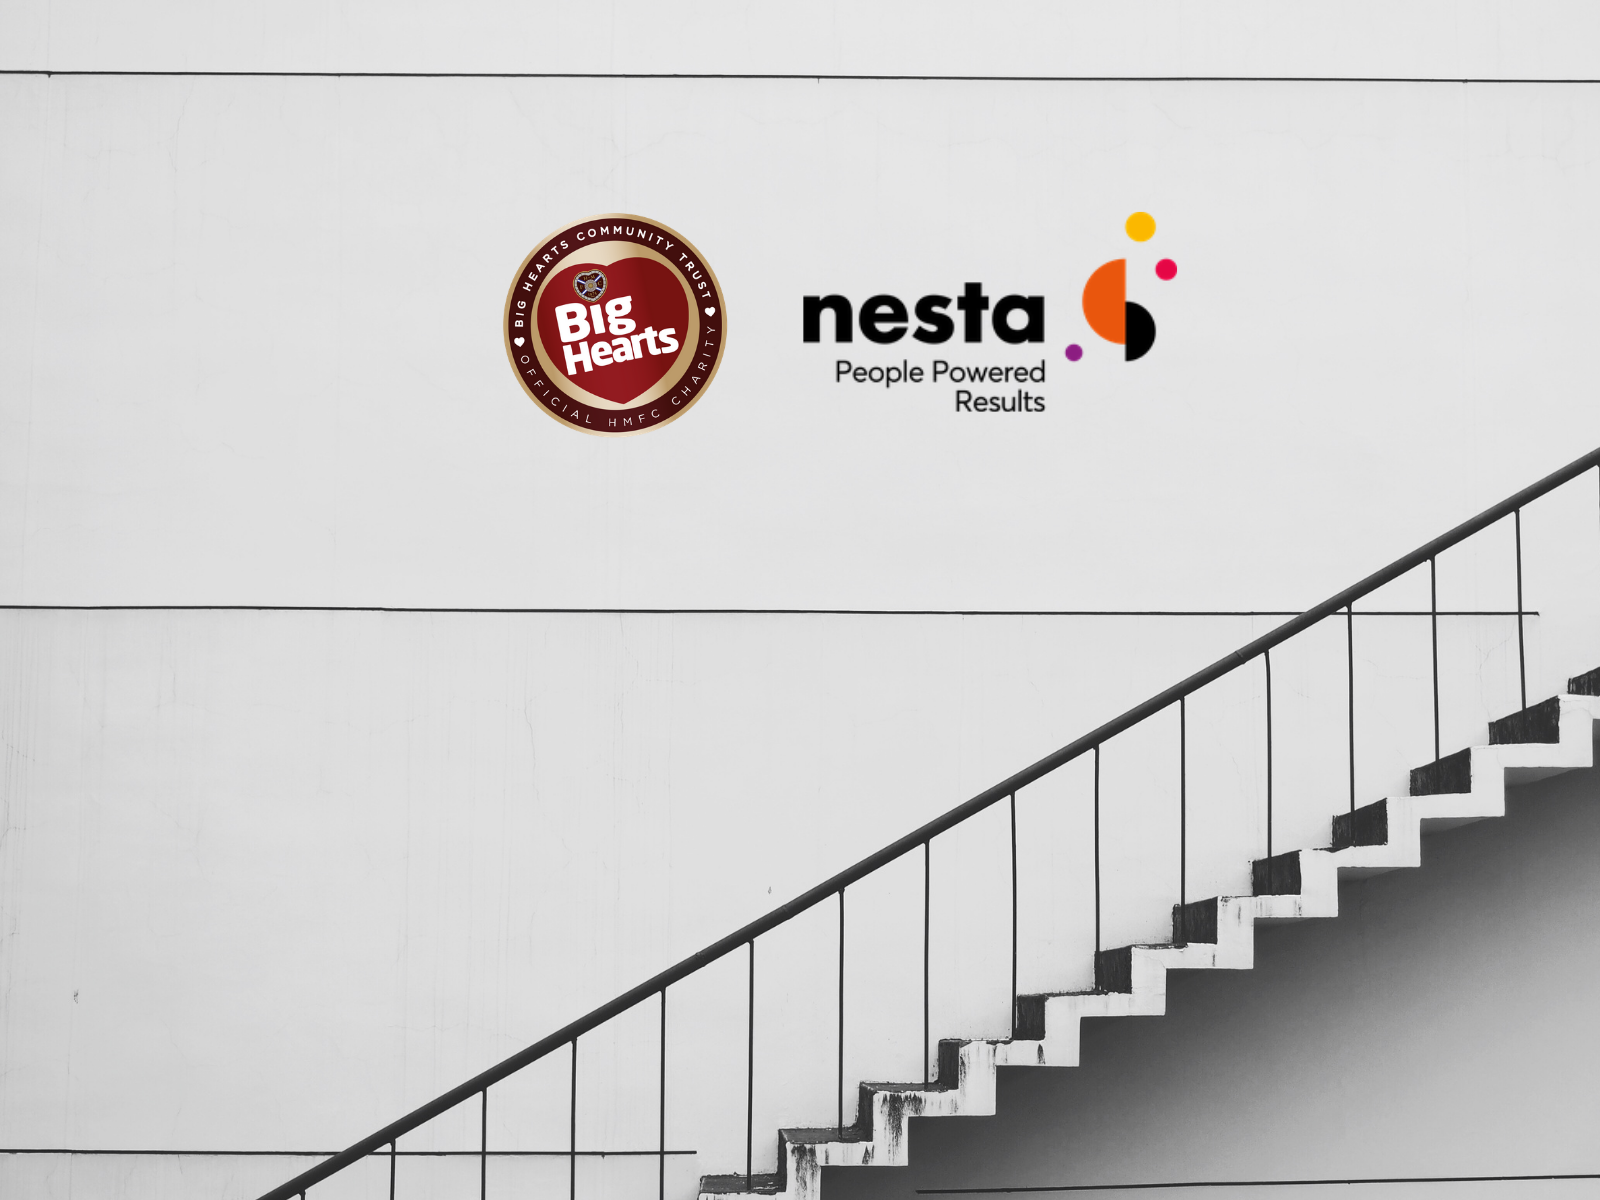 » BIG HEARTS TEAM UP WITH NESTA TO BUILD NEW 2022-2025 STRATEGY